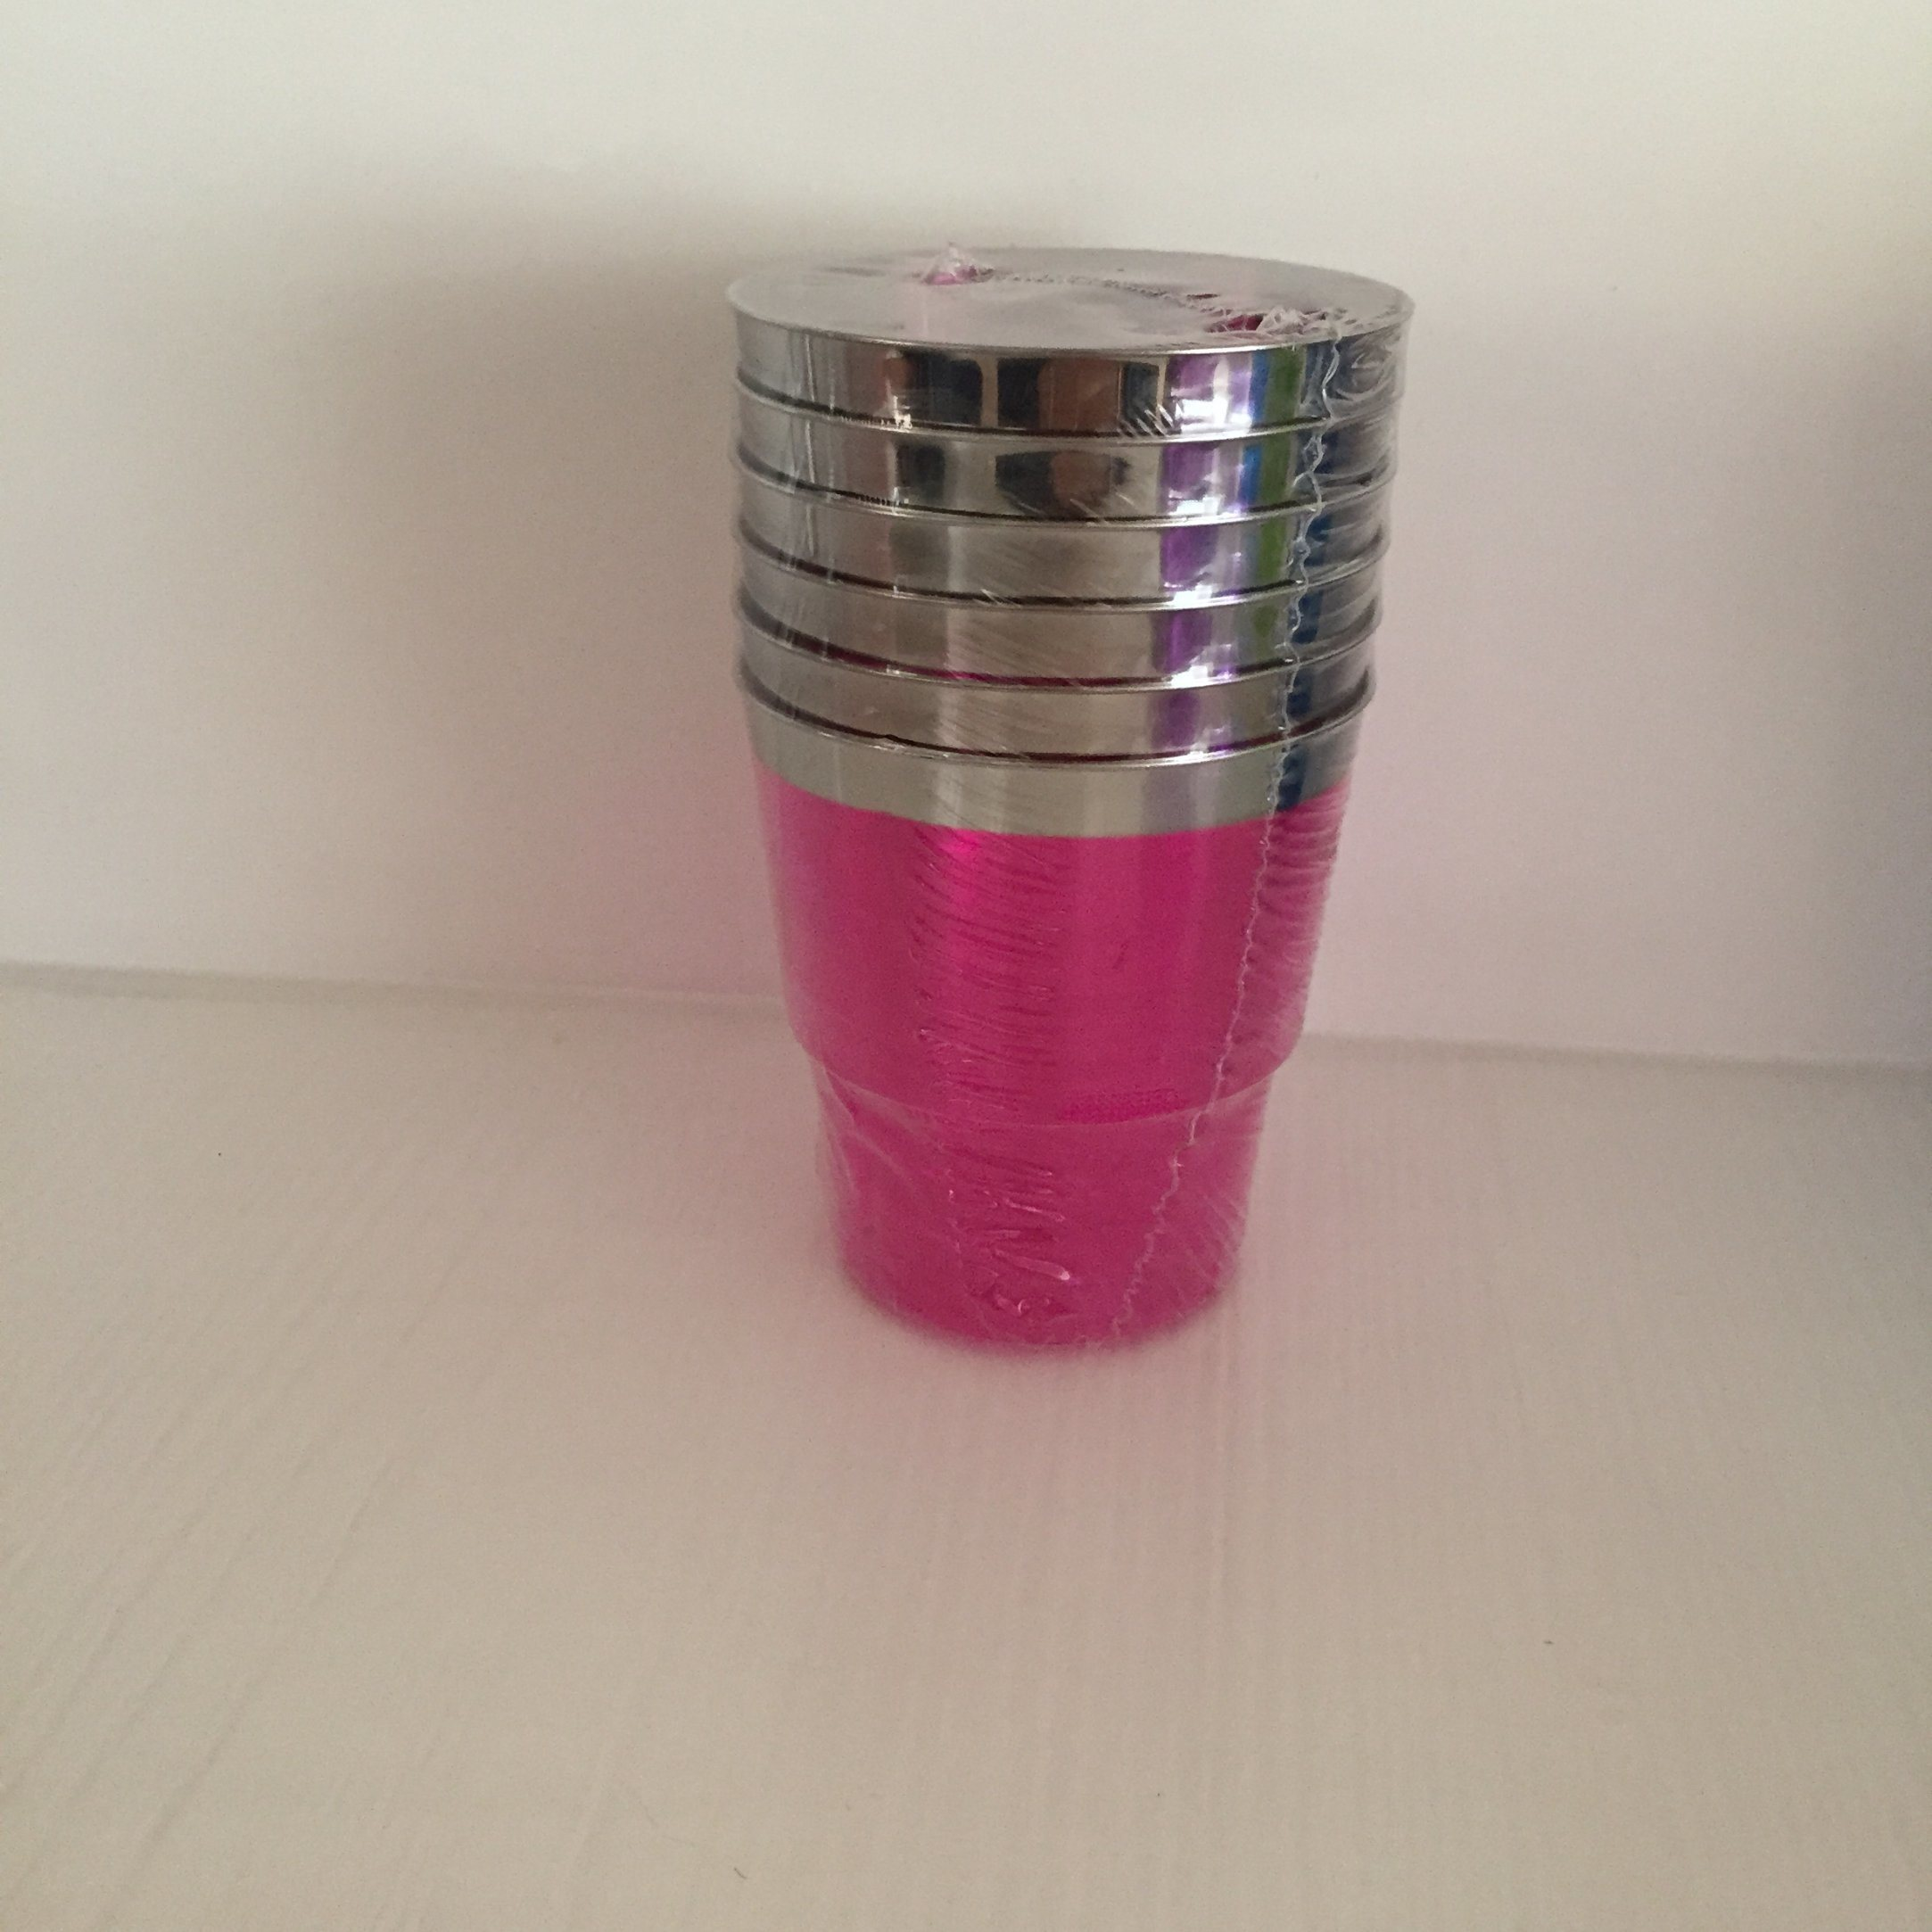 Plastic Cup, Glass, Mug, Tableware, PS, Disposable, Colorful Cup, Silver Rim